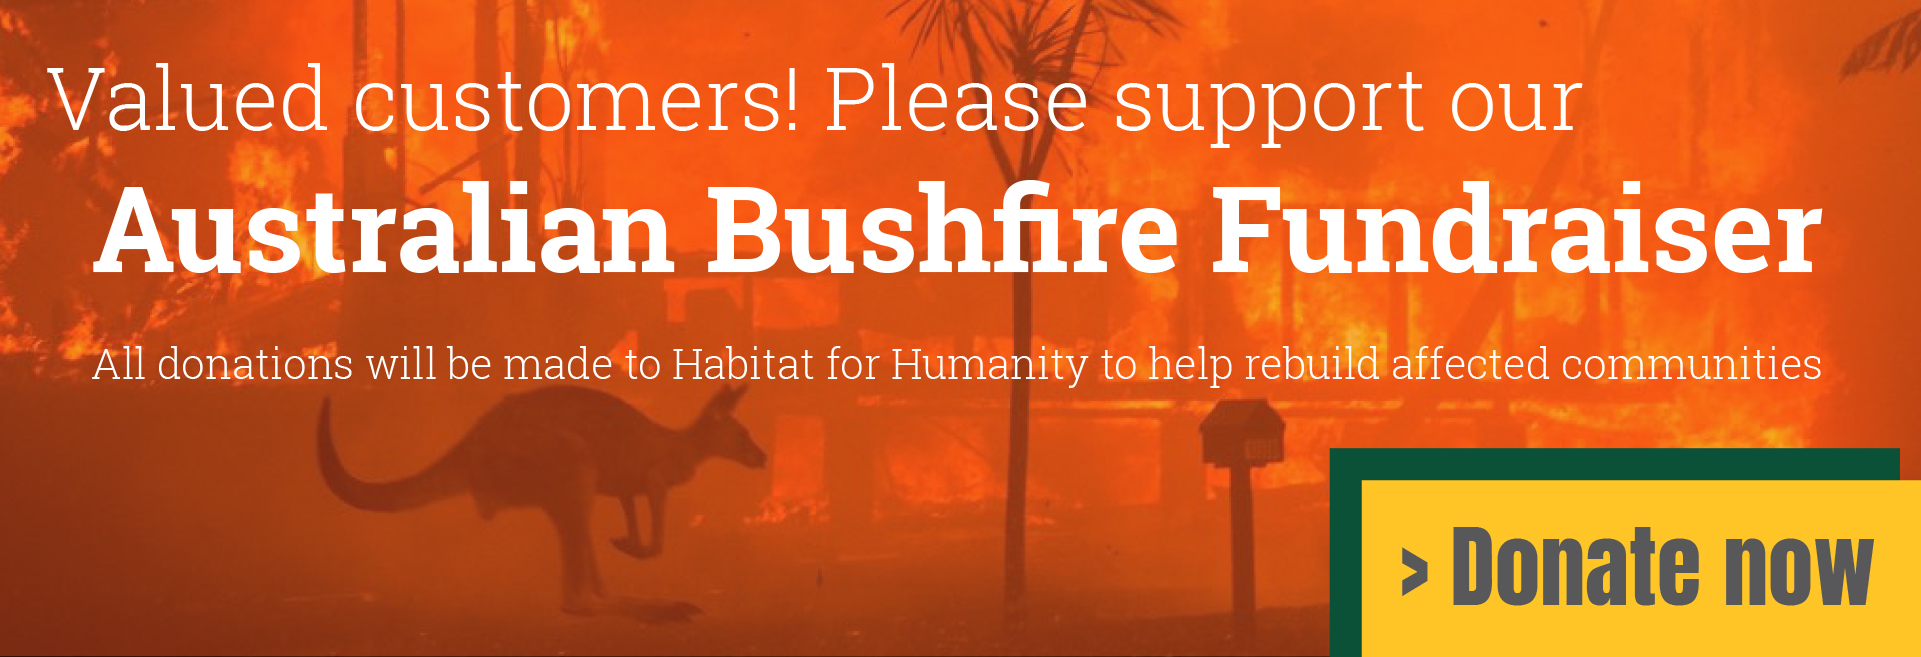 Please support our Australian Bushfire Fundraiser